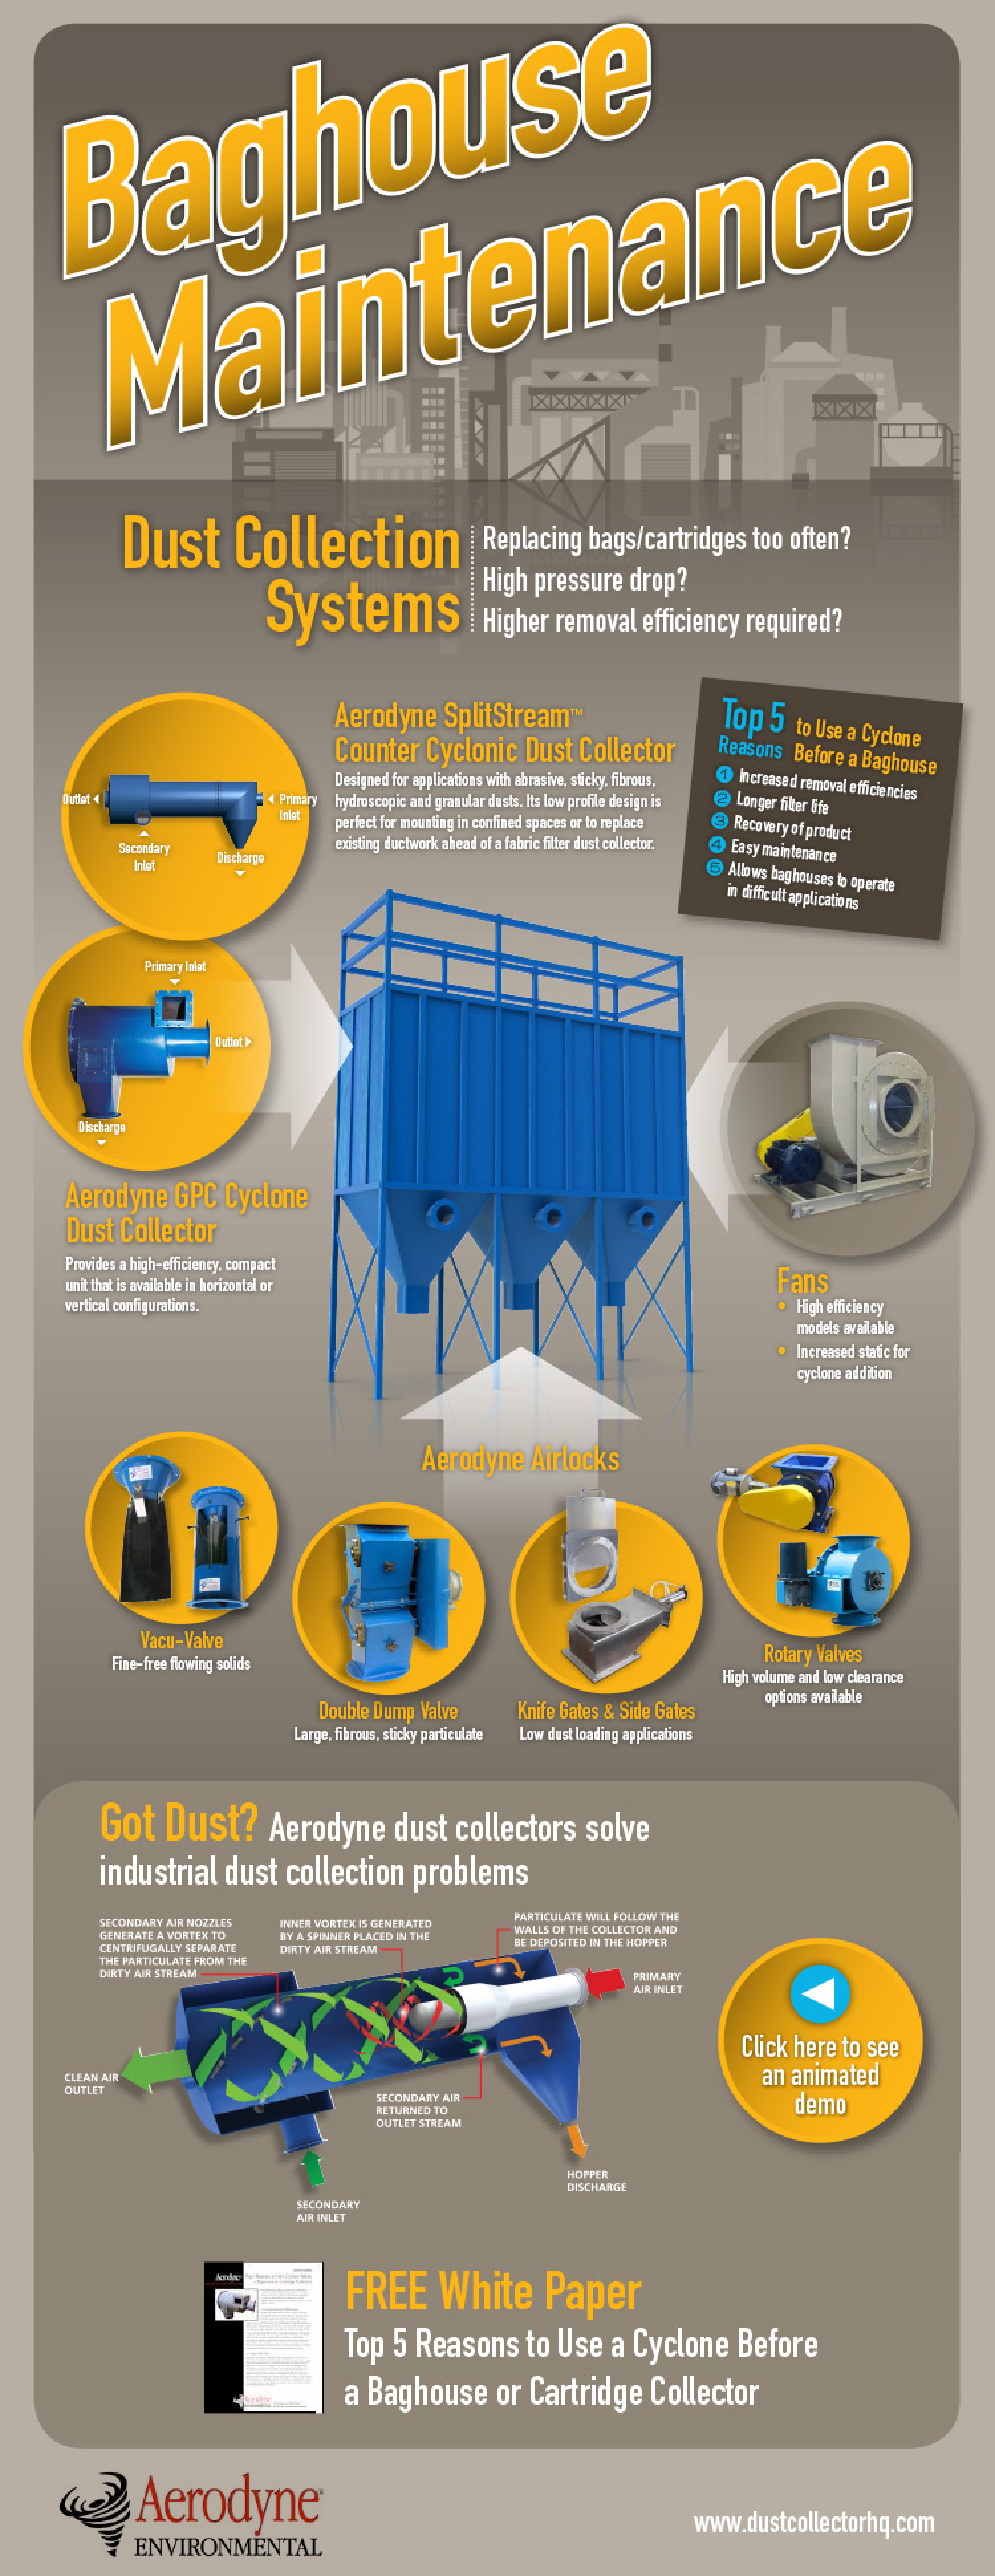 What is Your Dust Collection Cost with Baghouse Maintenance? Infographic